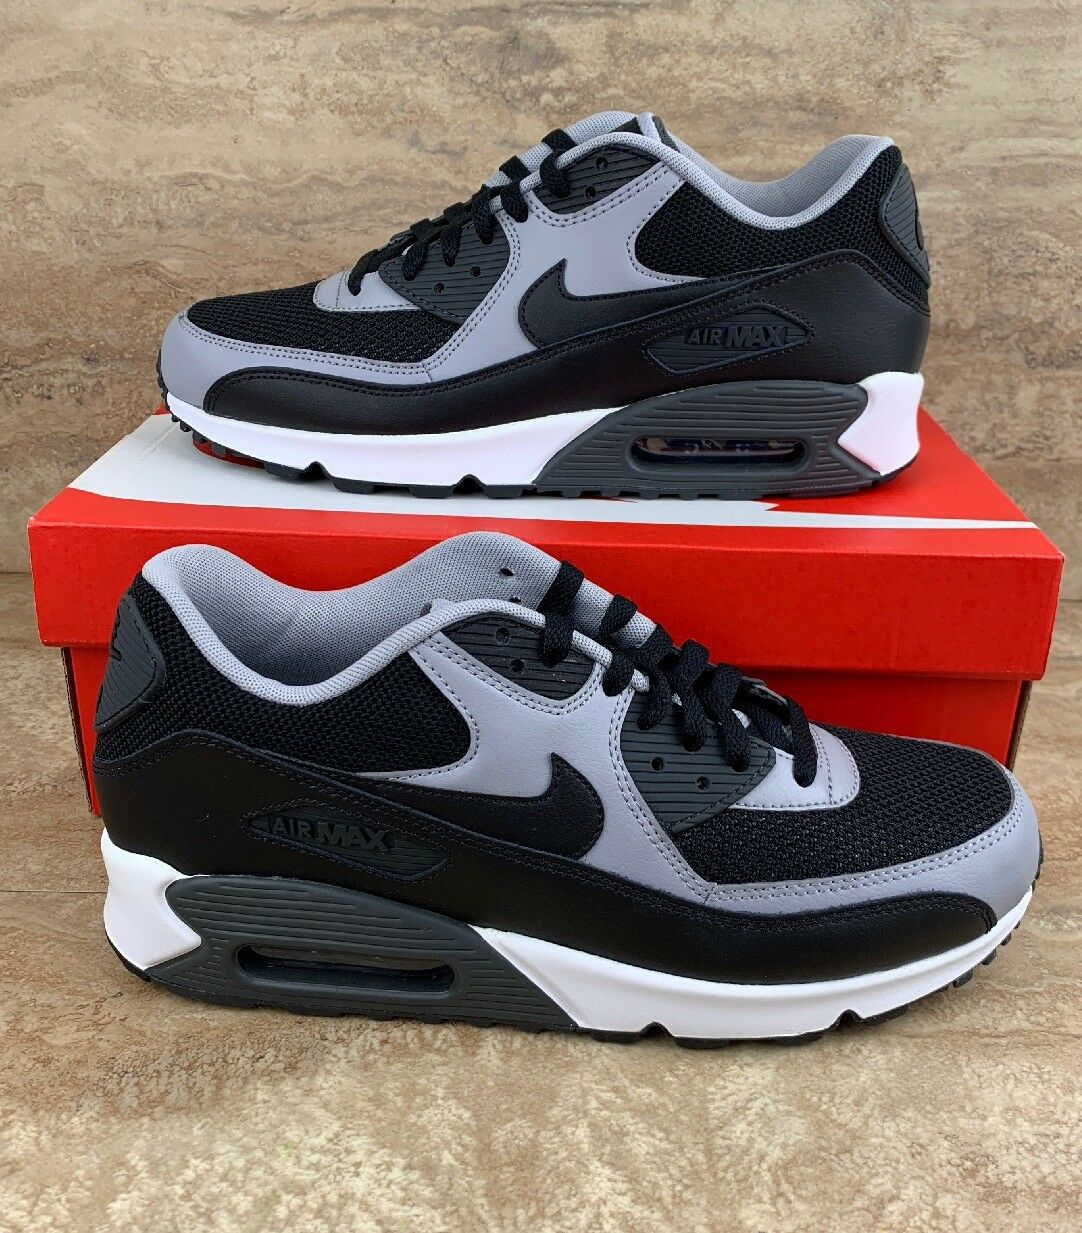 Nike Air Max 90 Essential Men's Running shoes Black Wolf Grey